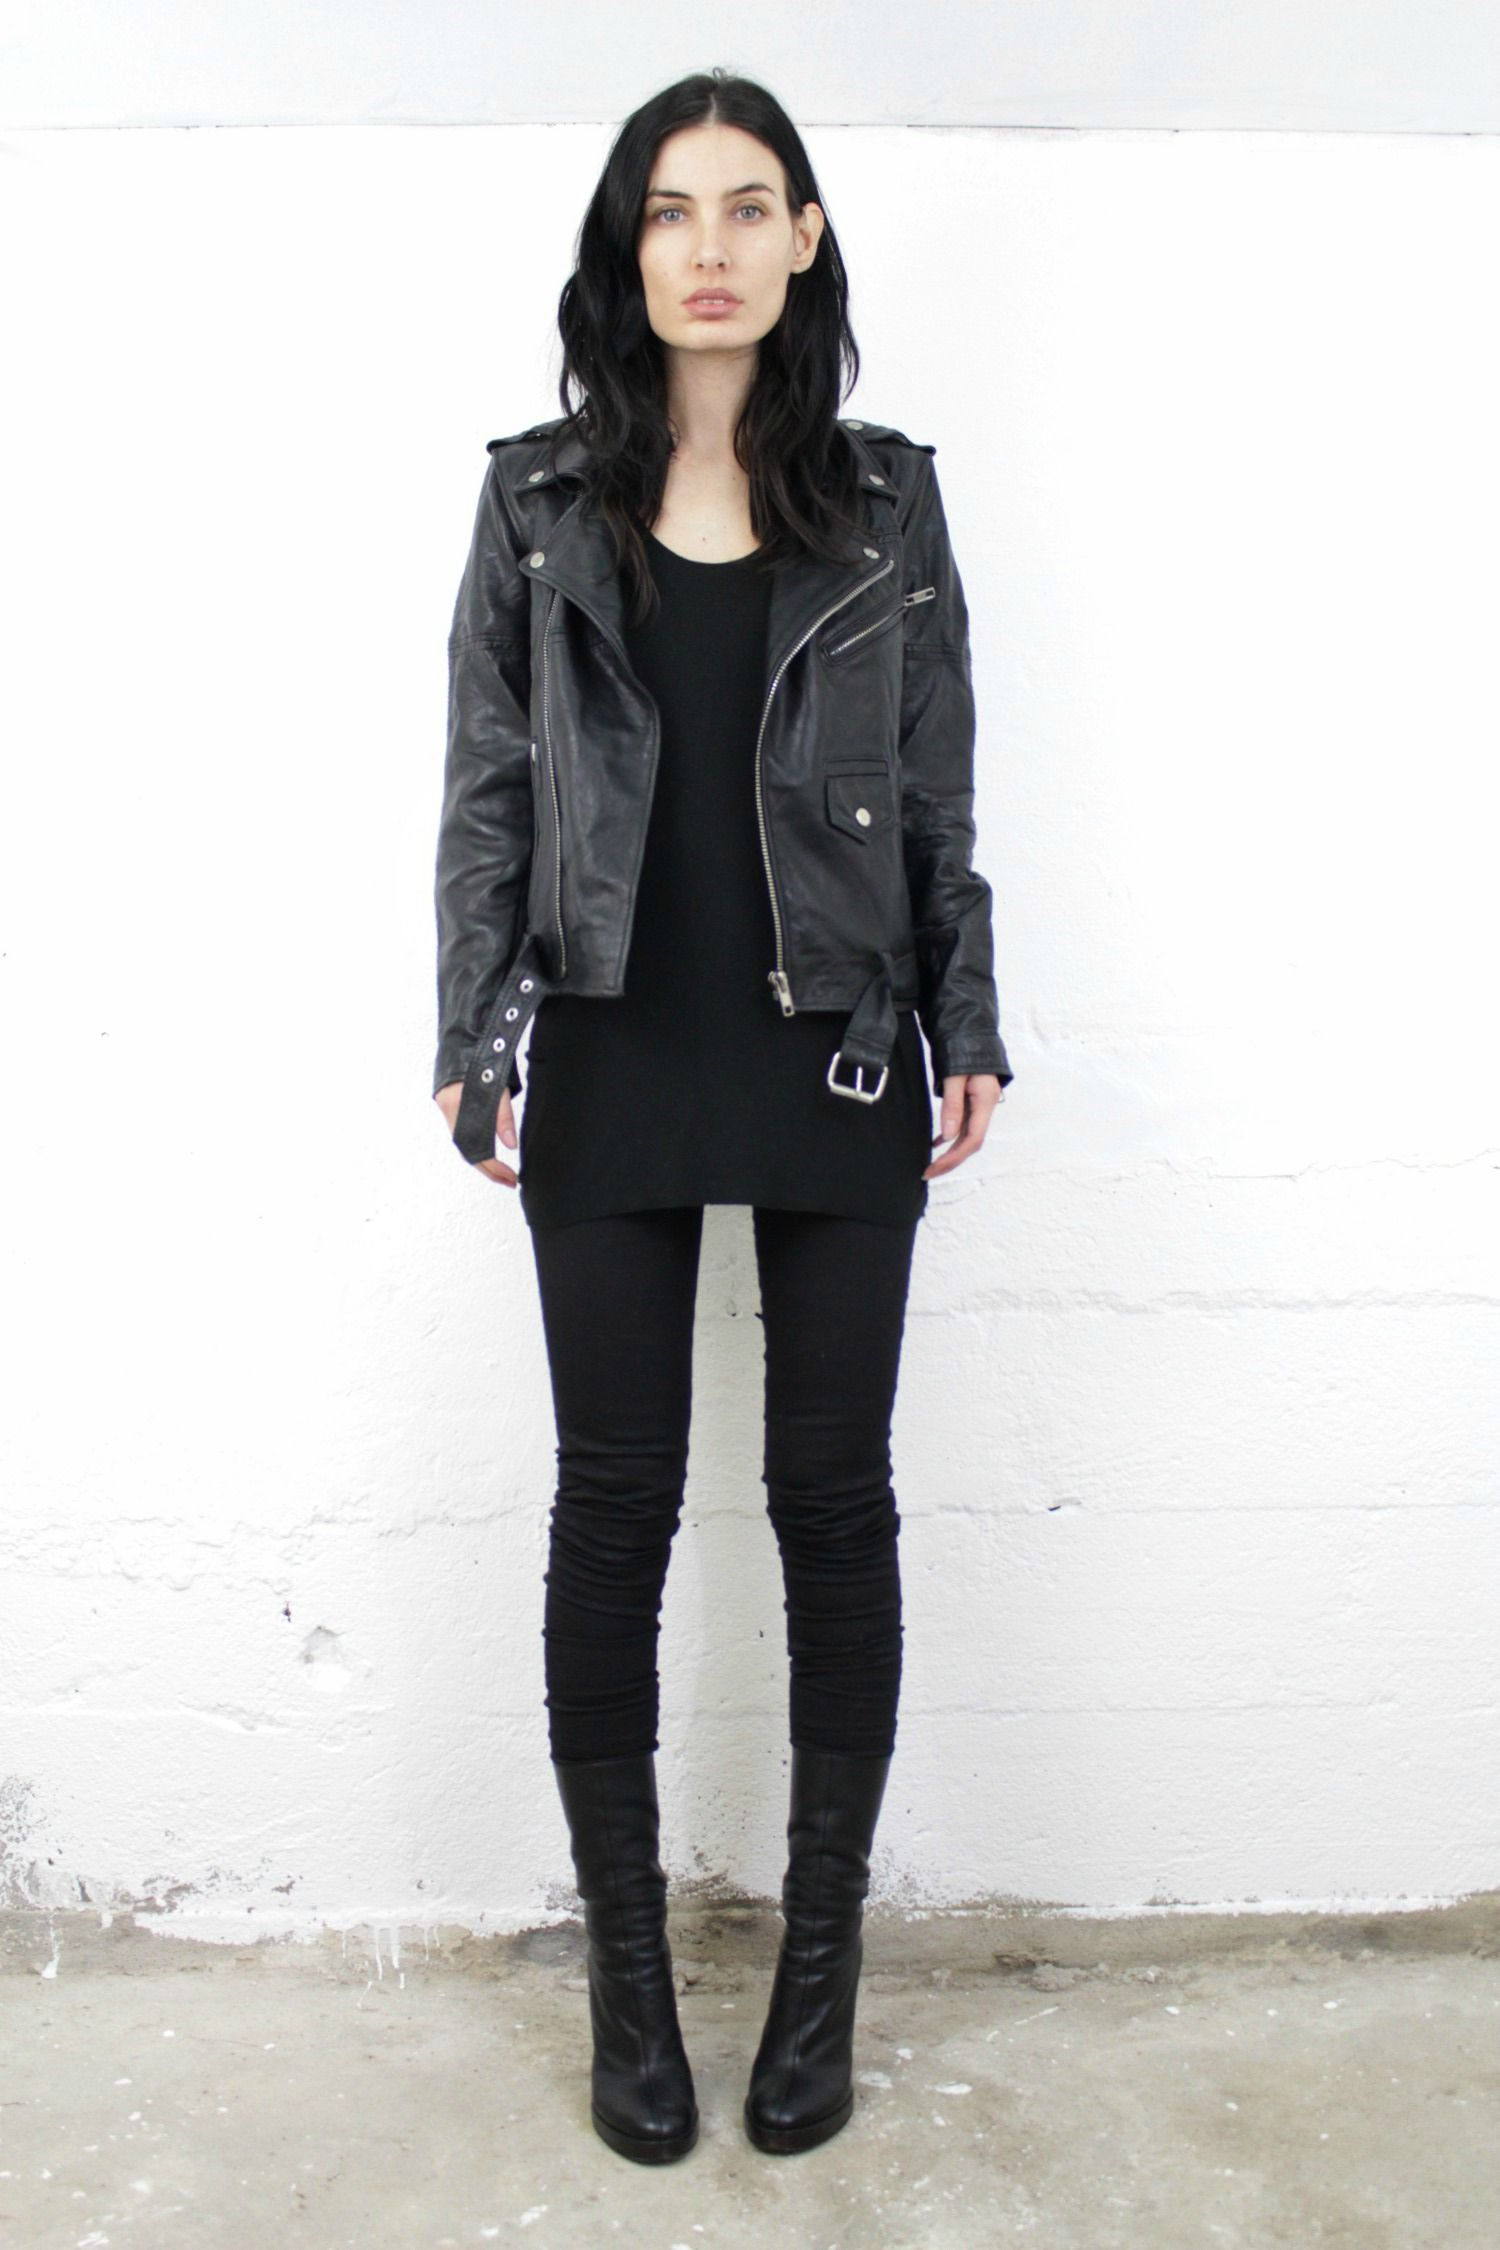 DEADWOOD RECYCLED LEATHER UNISEX JACKET | Sisters Of The Black ...